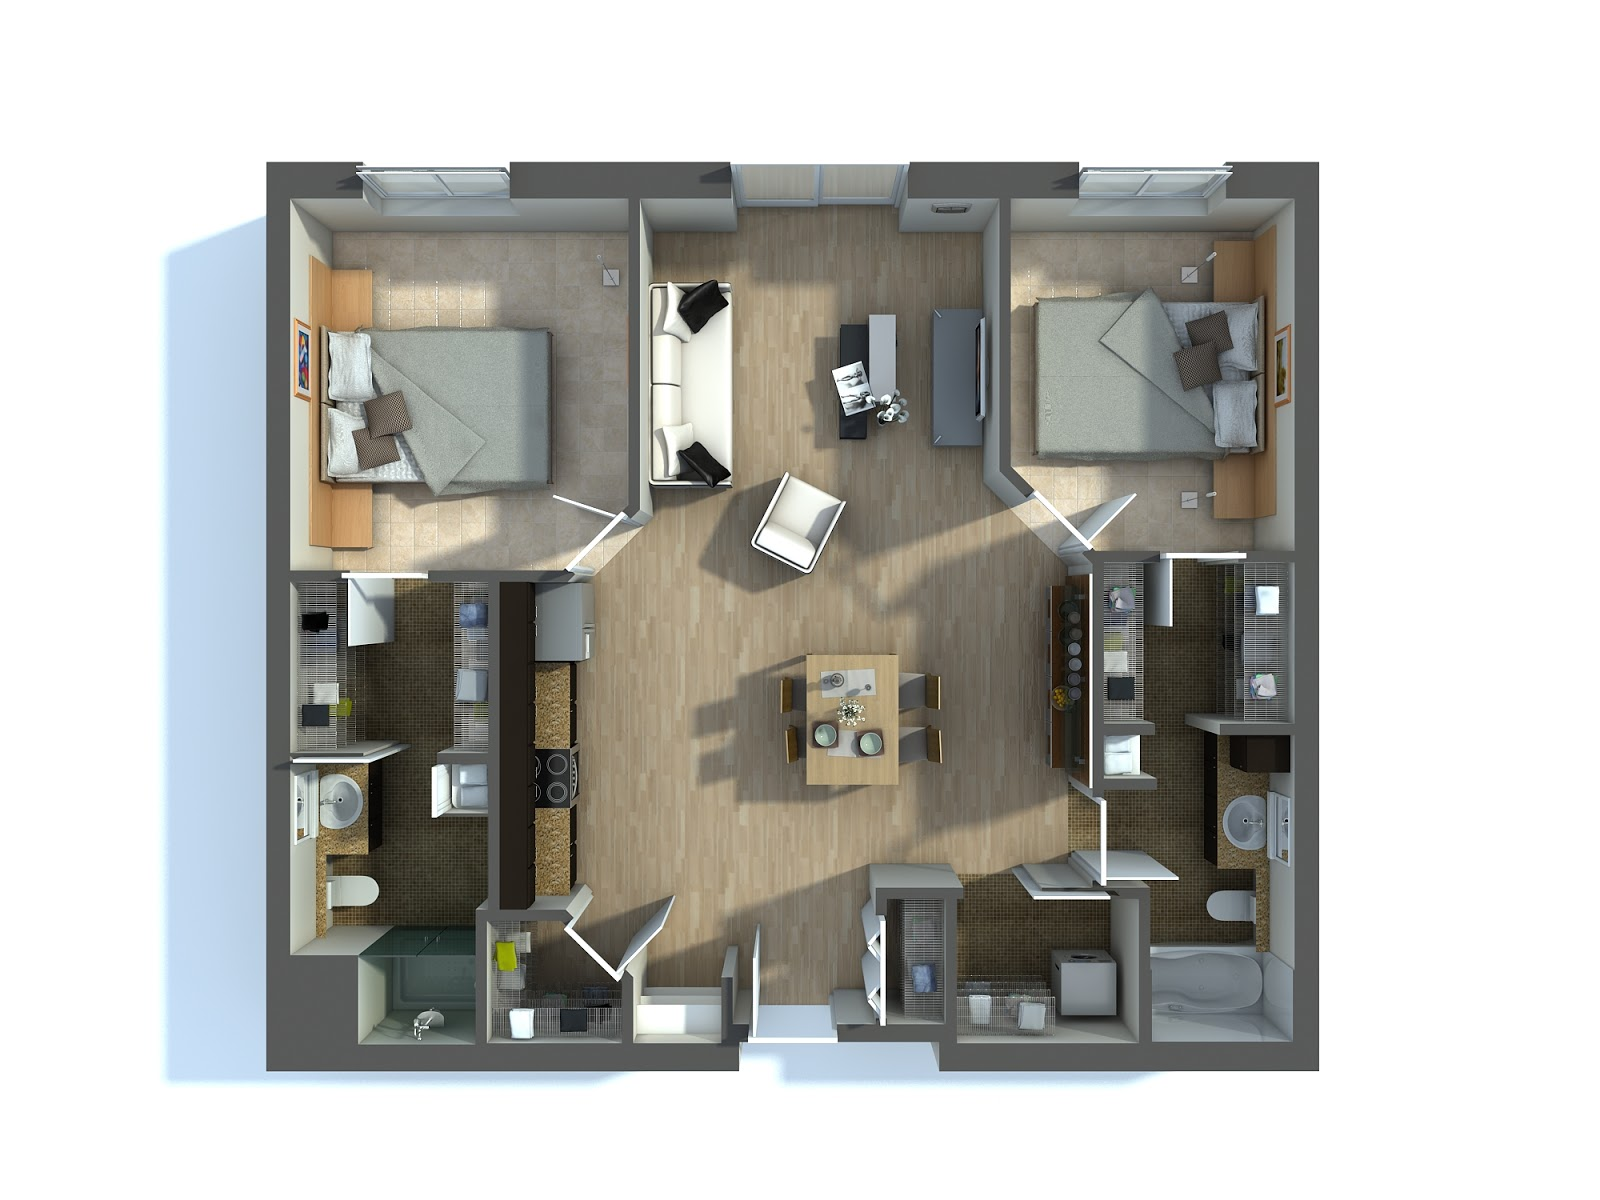 Optimal utilization of resources with 2D residential building plans